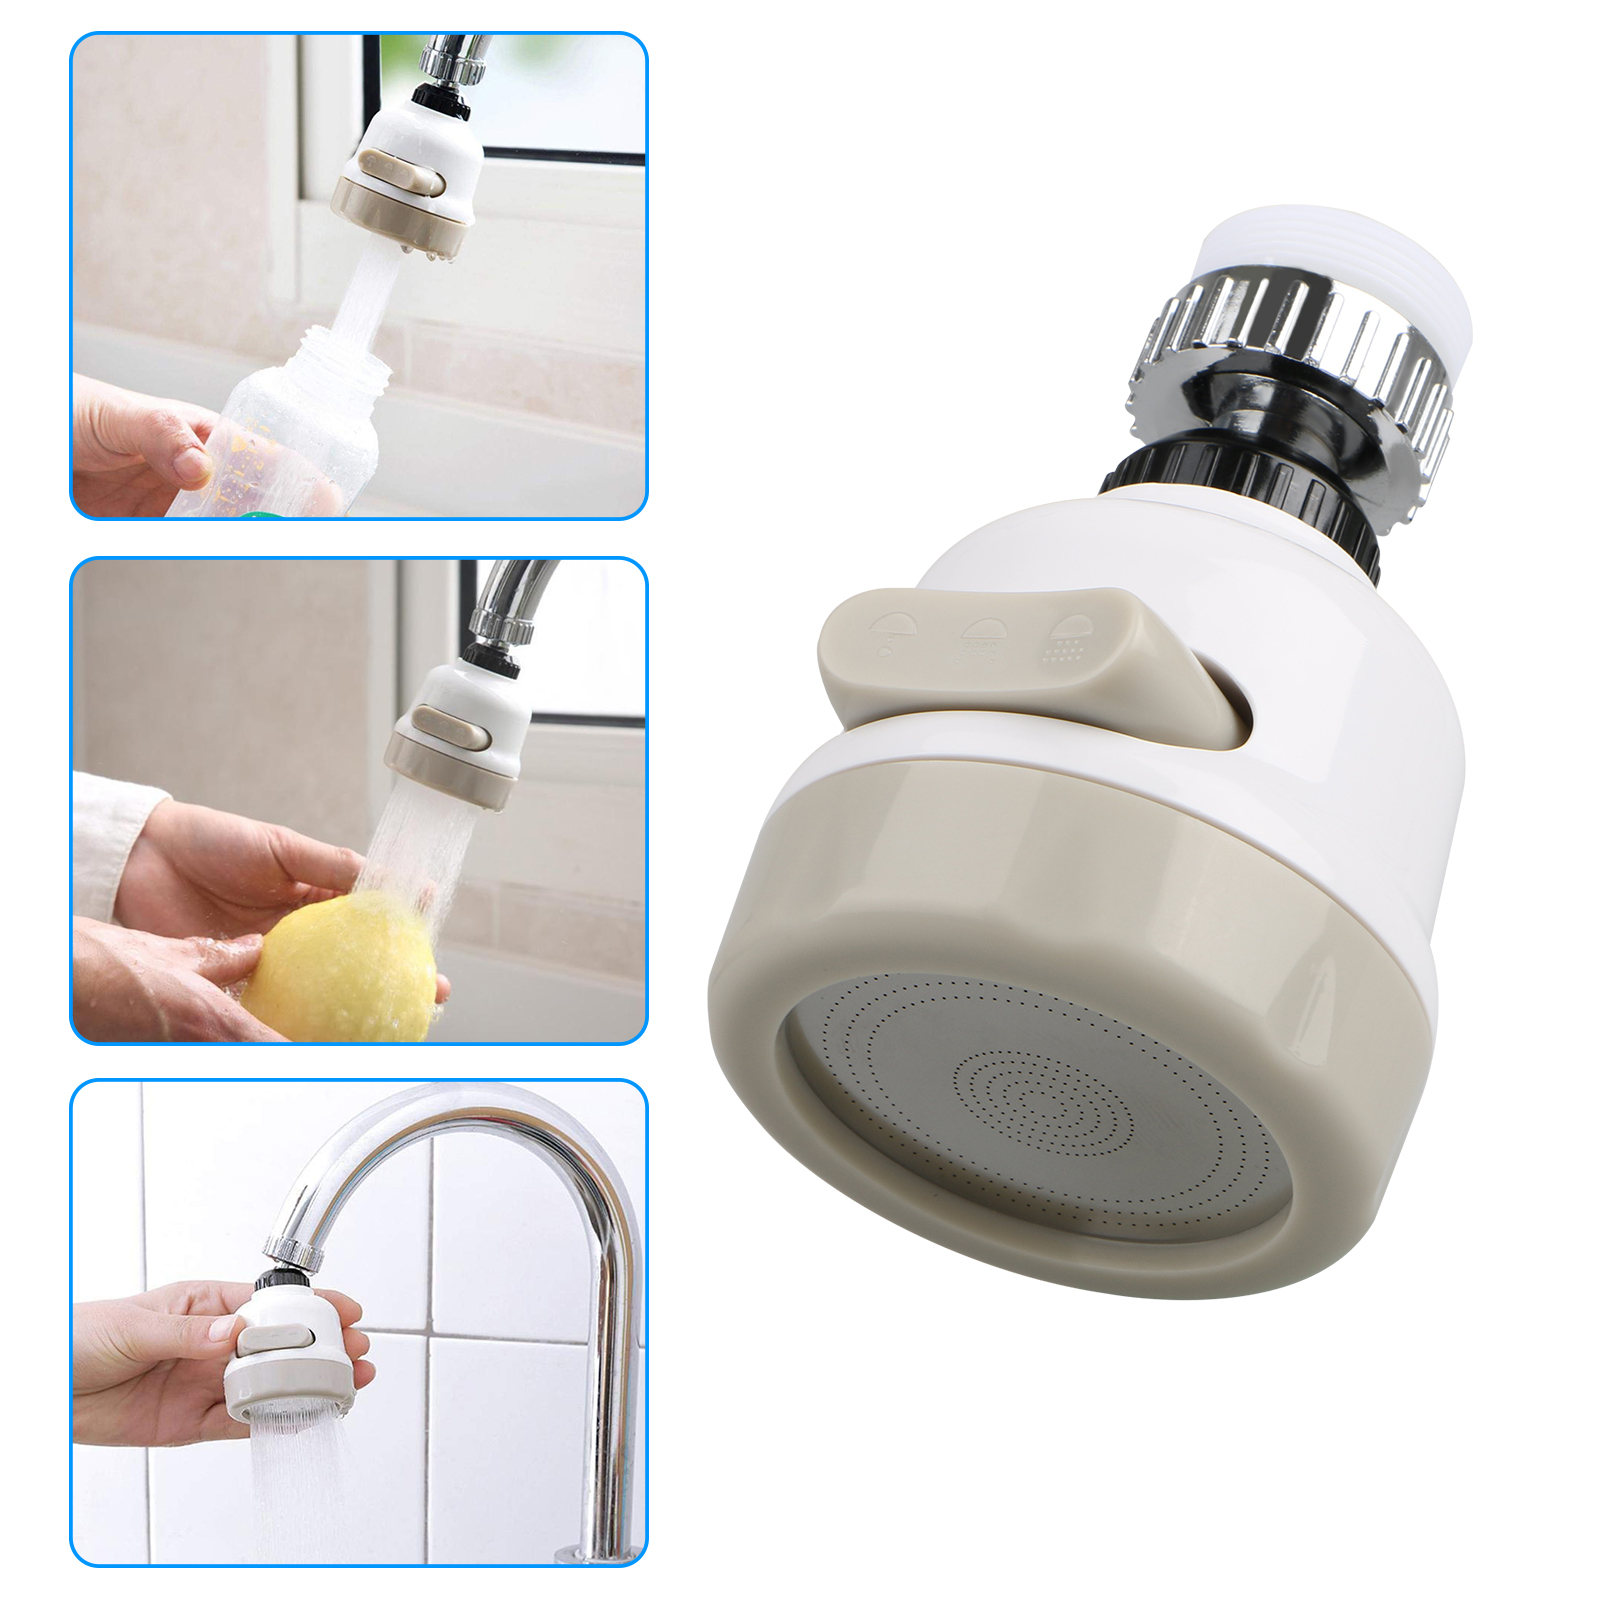 Kitchen-Sink-Faucet-Spray-Head-360-Swivel-Pull-Out-Spray-Head-Replacement-Part thumbnail 10